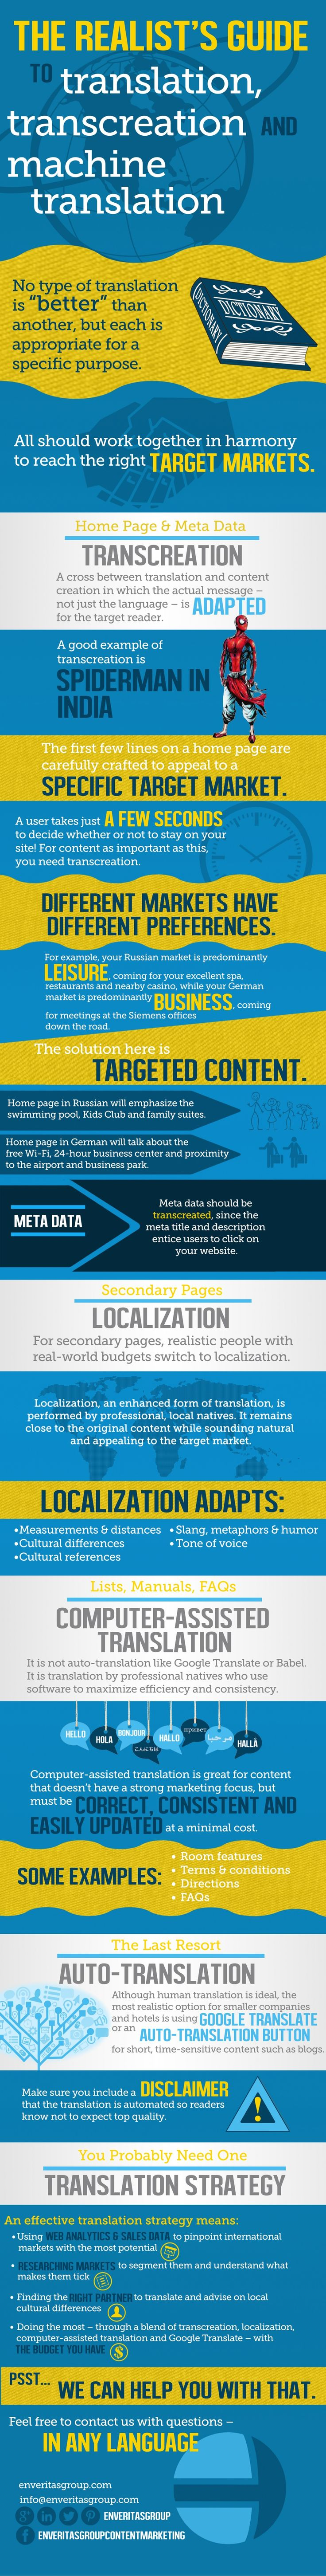 The Realist's Guide to Translation, Transcreation and Machine Translation - Infographic by EnVeritasGroup via slideshare